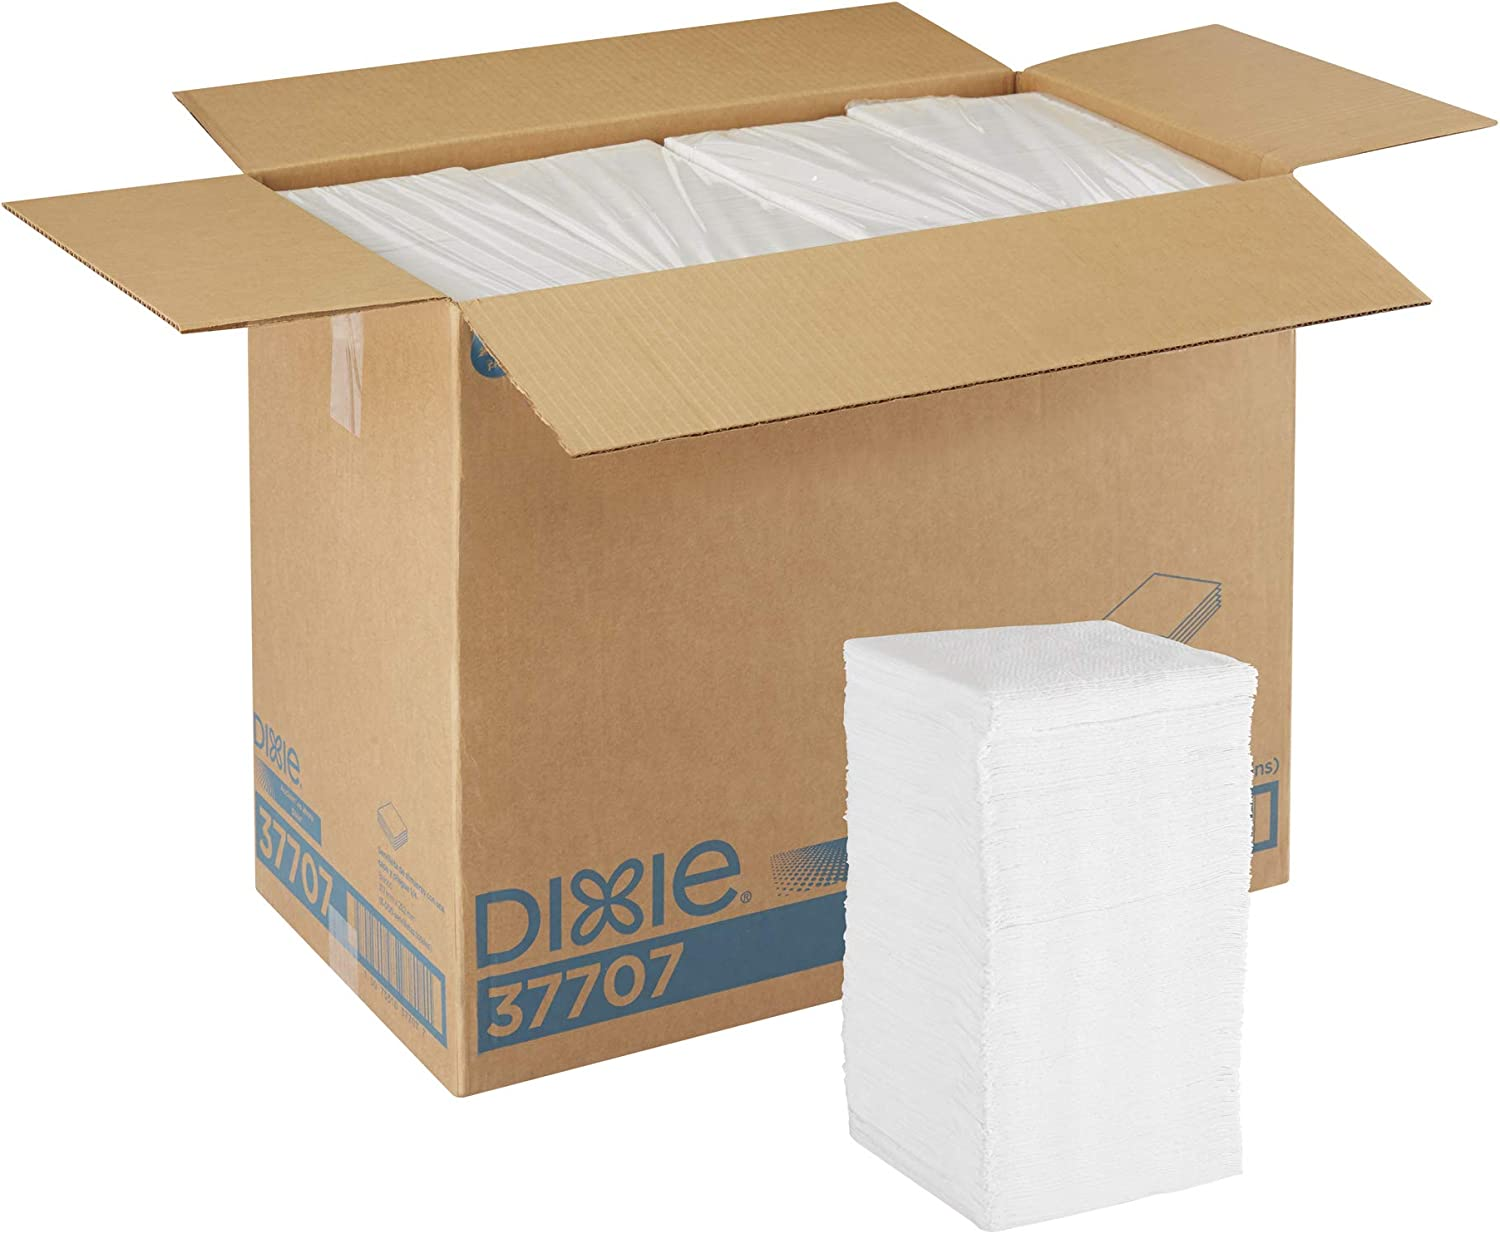 Dixie 1/4-Fold 1-Ply Luncheon Napkin (Previously Acclaim) by GP PRO (Georgia-Pacific), White, 37707, 500 Napkins Per Pack, 12 Packs Per Case